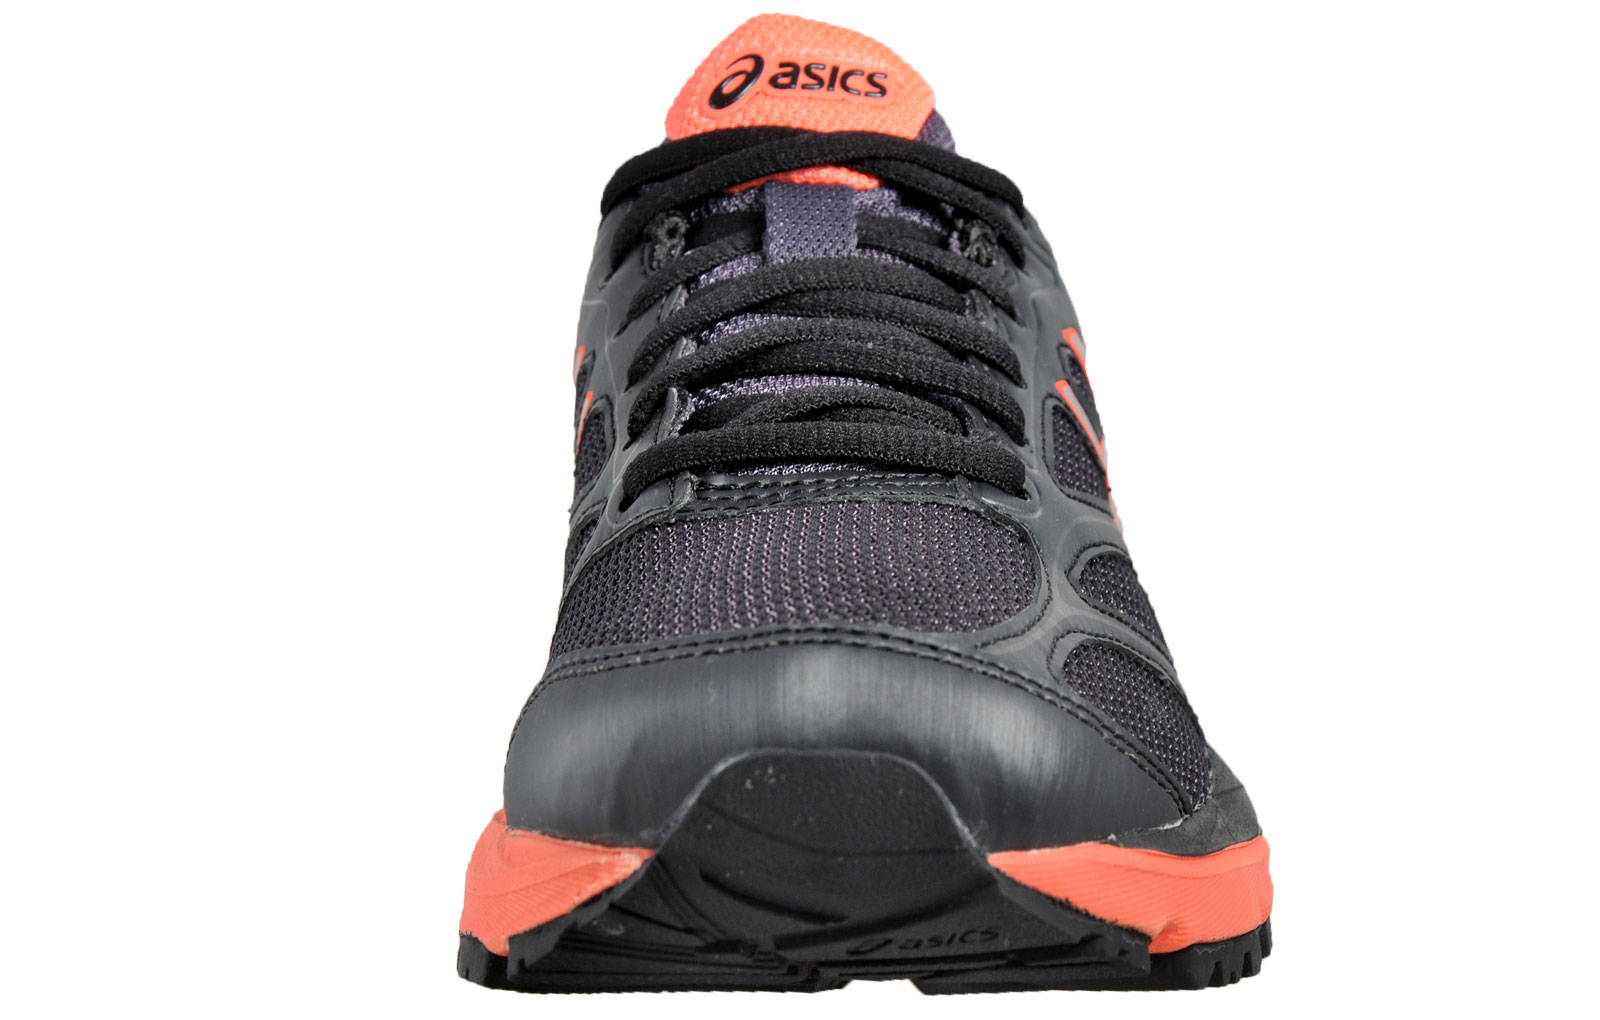 Details about Asics Gel Pulse 8 GTX Gore Tex Womens Running Shoes Black Coral